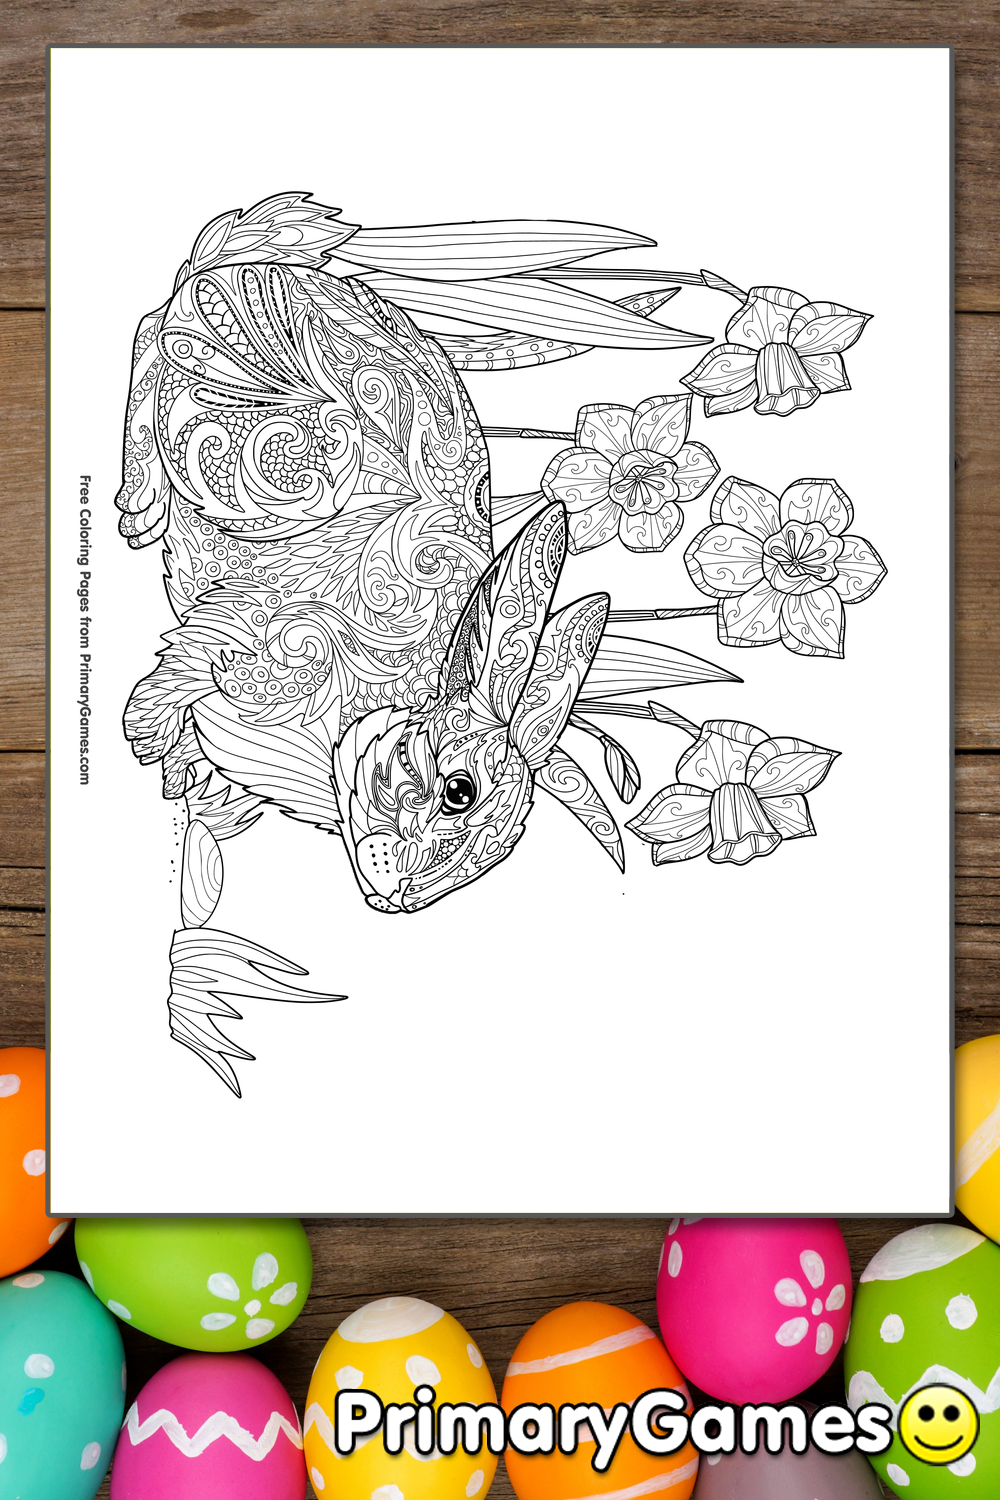 Zentangle Rabbit and Daffodils Coloring Page Printable